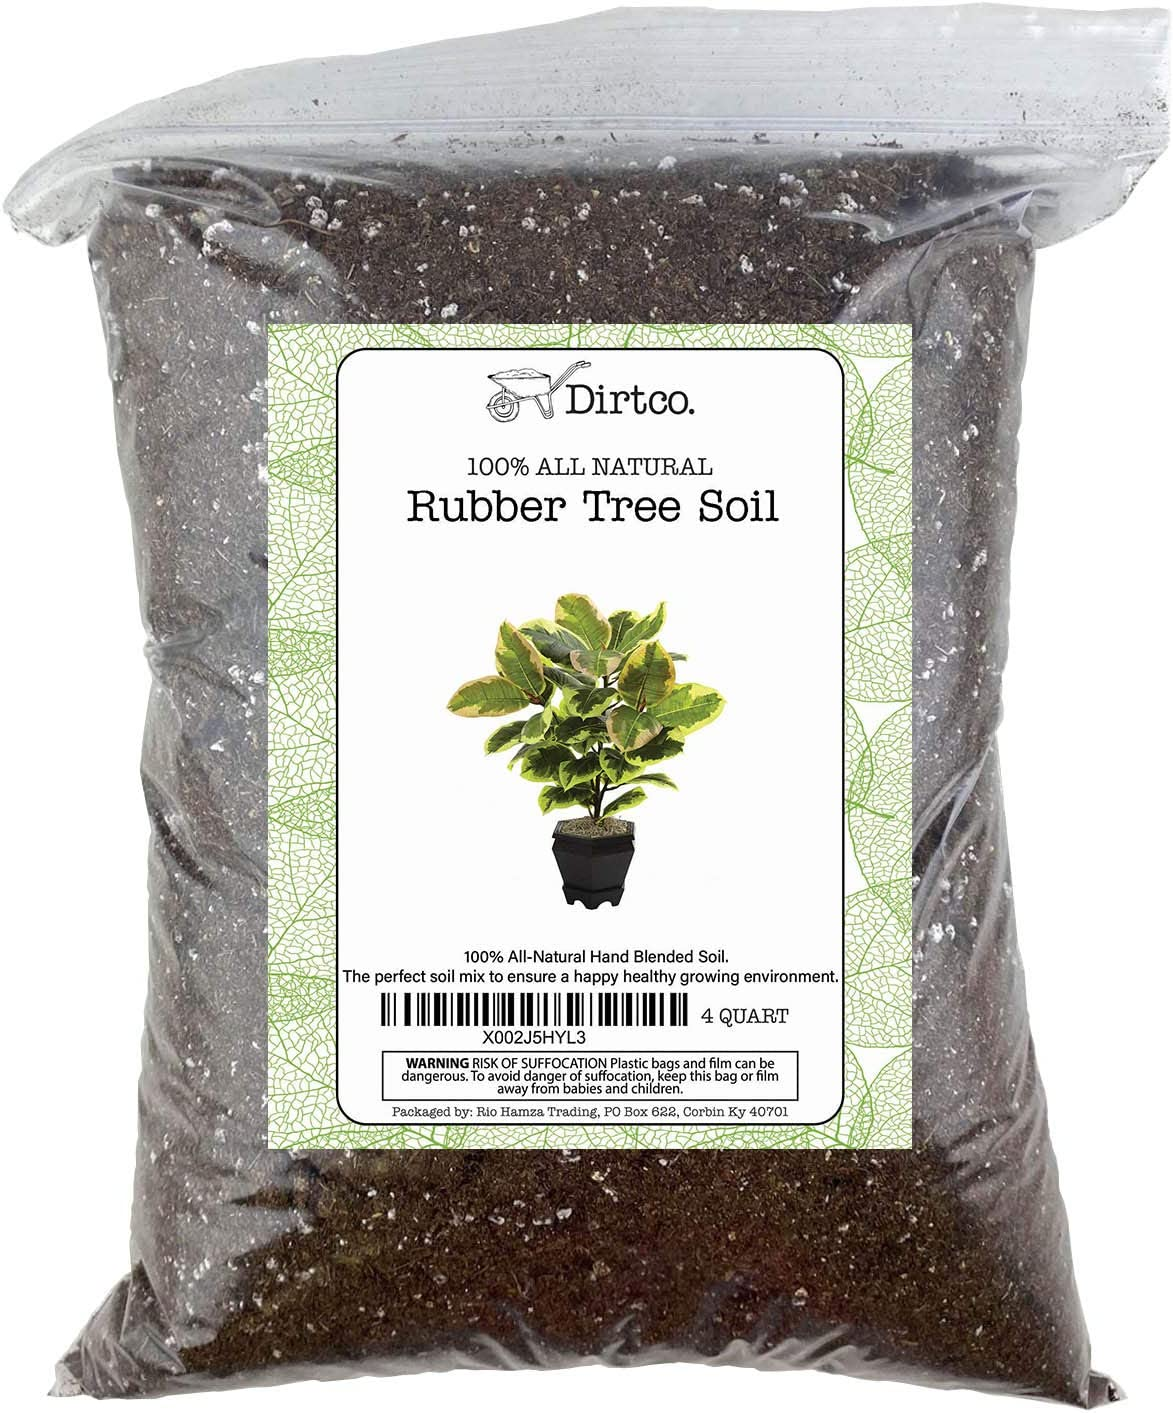 "Hand Blend Rubber Plant Soil, Soil Mix for Rubber Burgundy Ficus Plant, Repot from 4"" Pot to Grower Pot or Larger, 4qt Rubber Tree Soil"